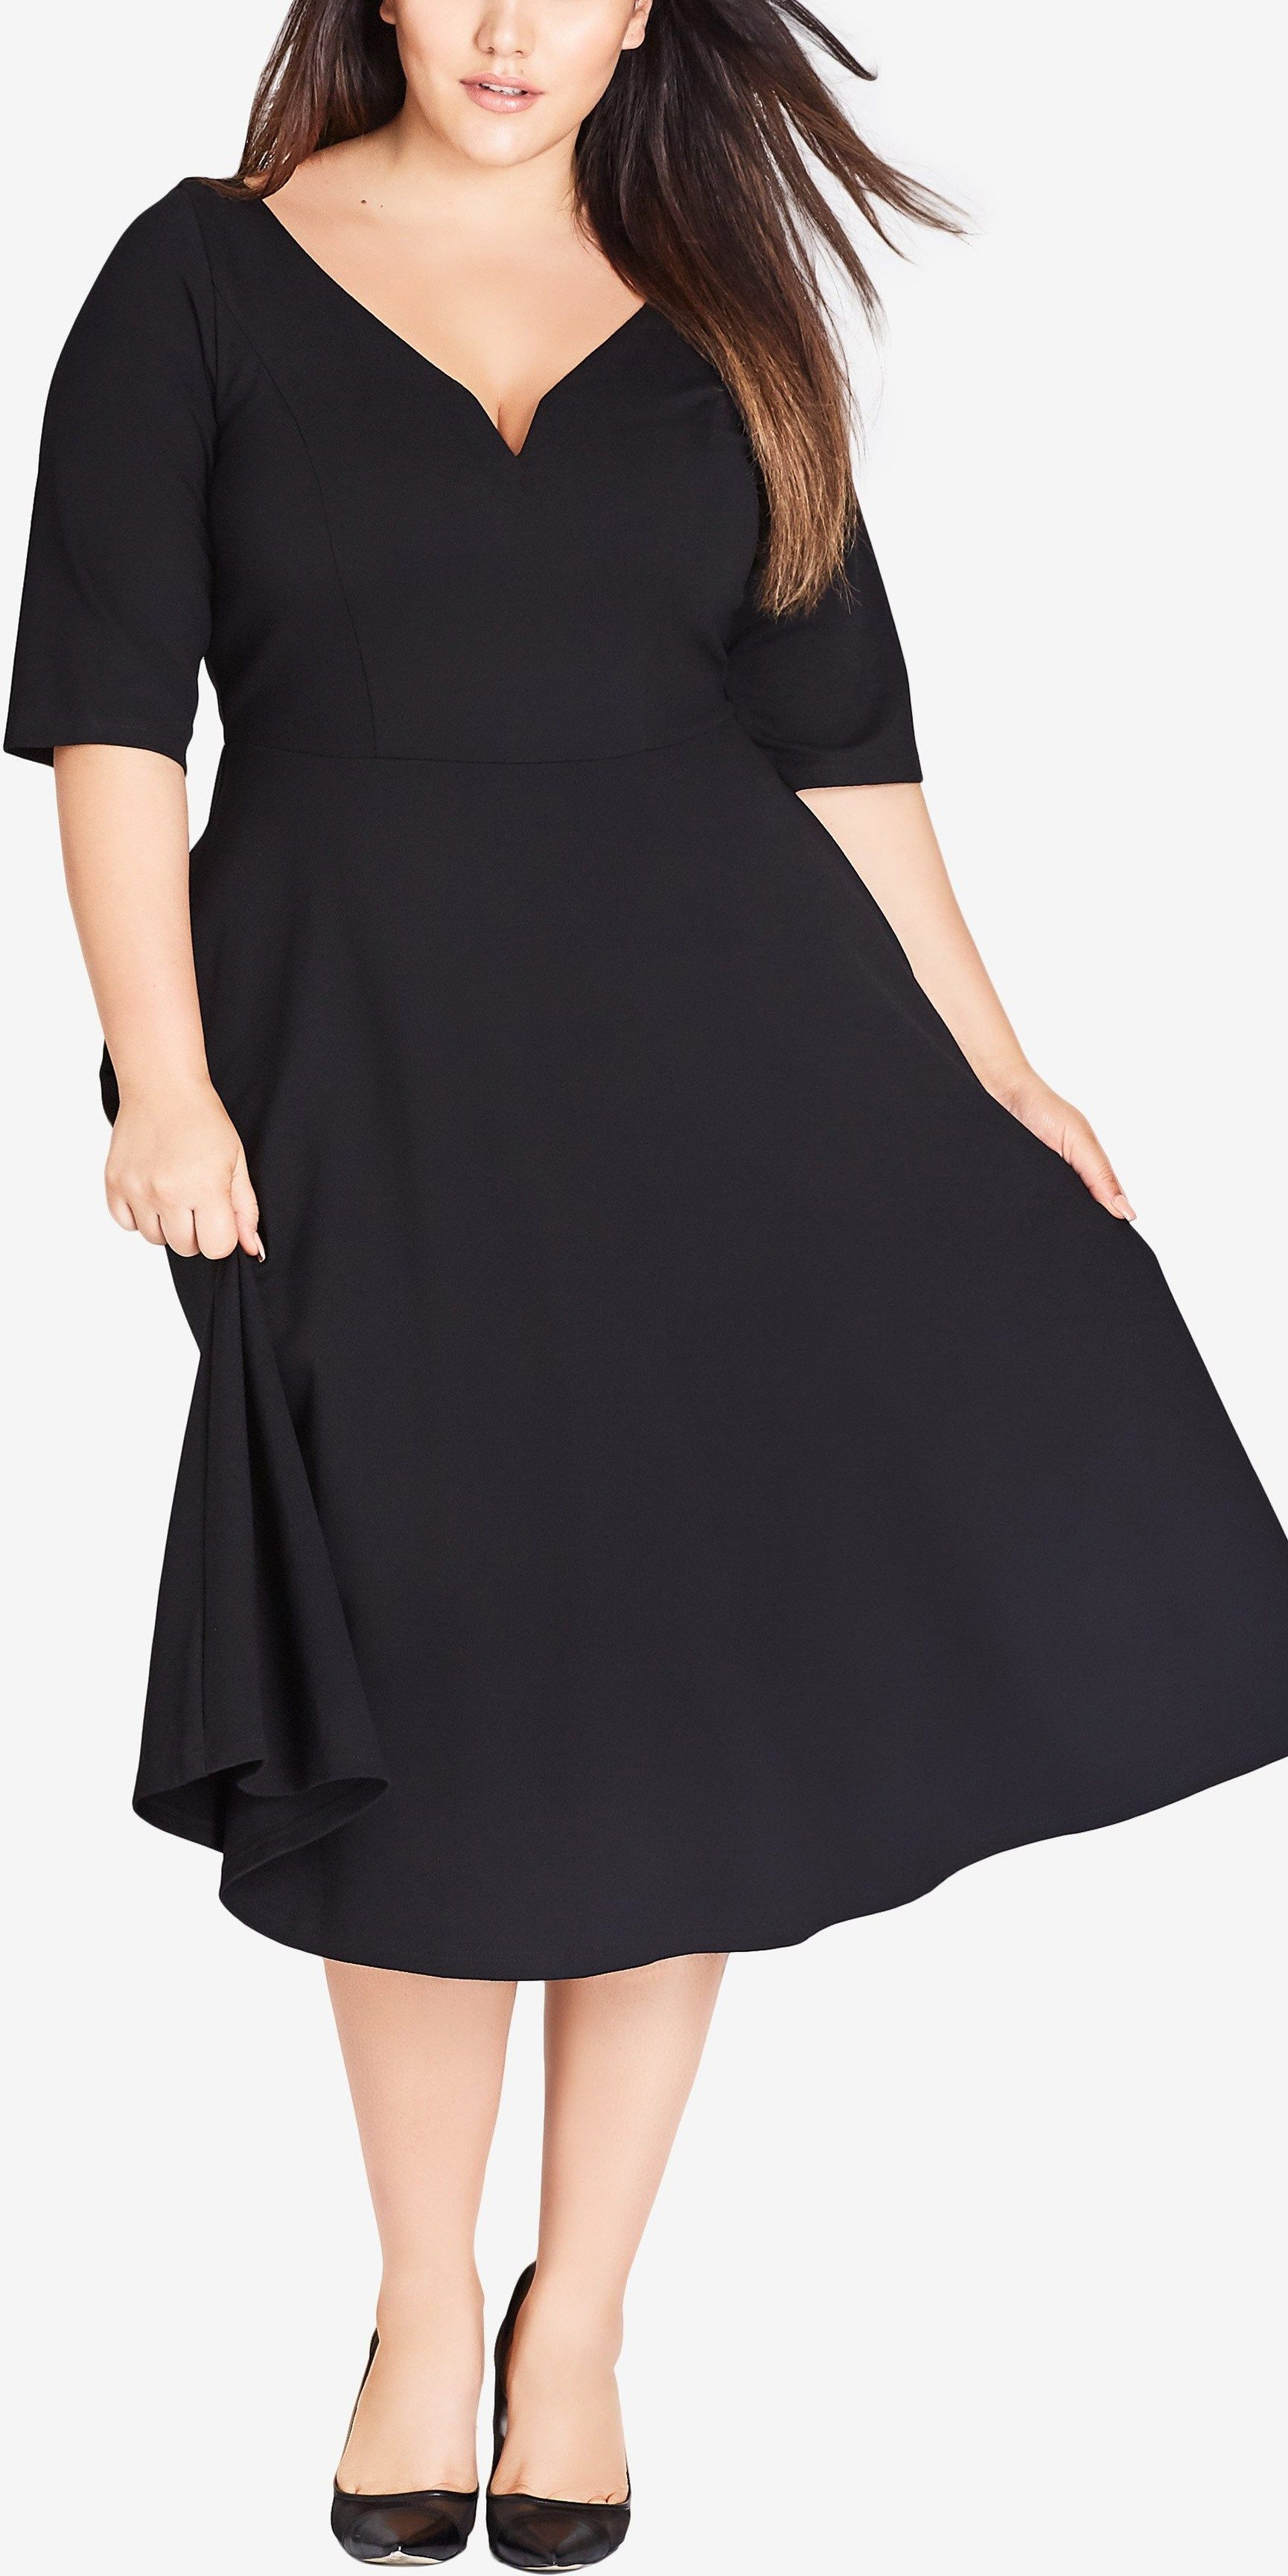 42 Plus Size Wedding Guest Dresses With Sleeves Alexa Webb Plus Size Wedding Guest Dresses Wedding Guest Dress Wedding Guest Dress Summer [ 3460 x 1730 Pixel ]